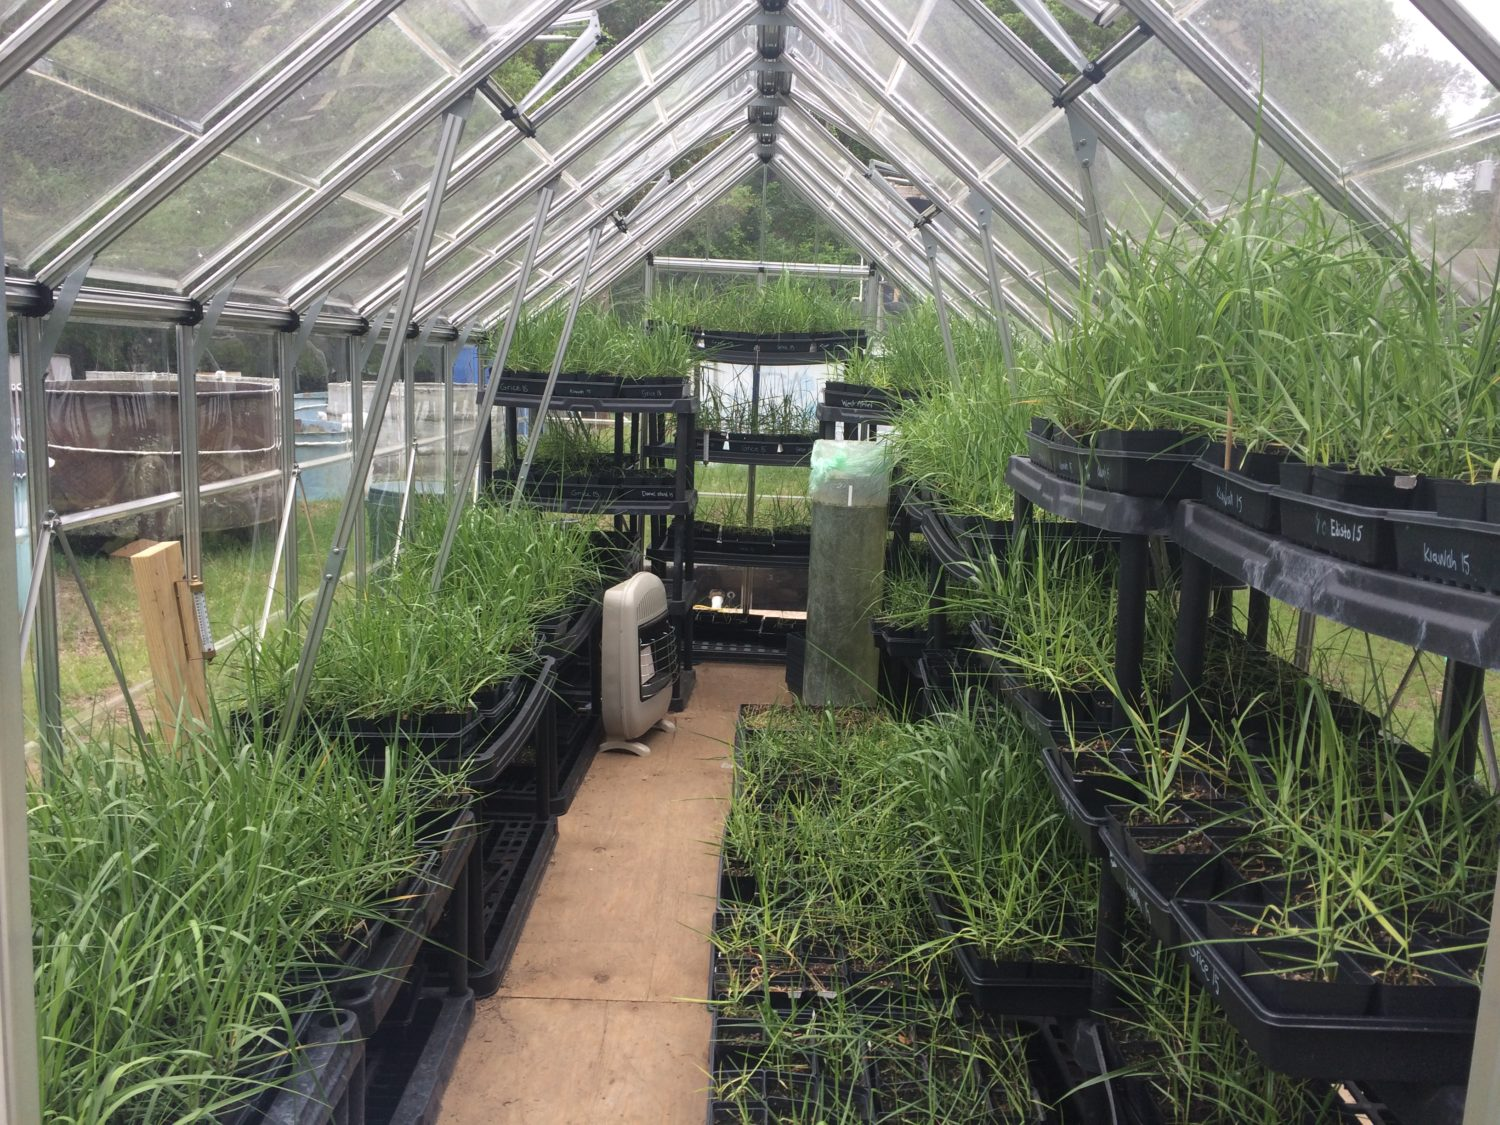 Marsh seedlings growing in a greenhouse at Fort Johnson Marine Center.